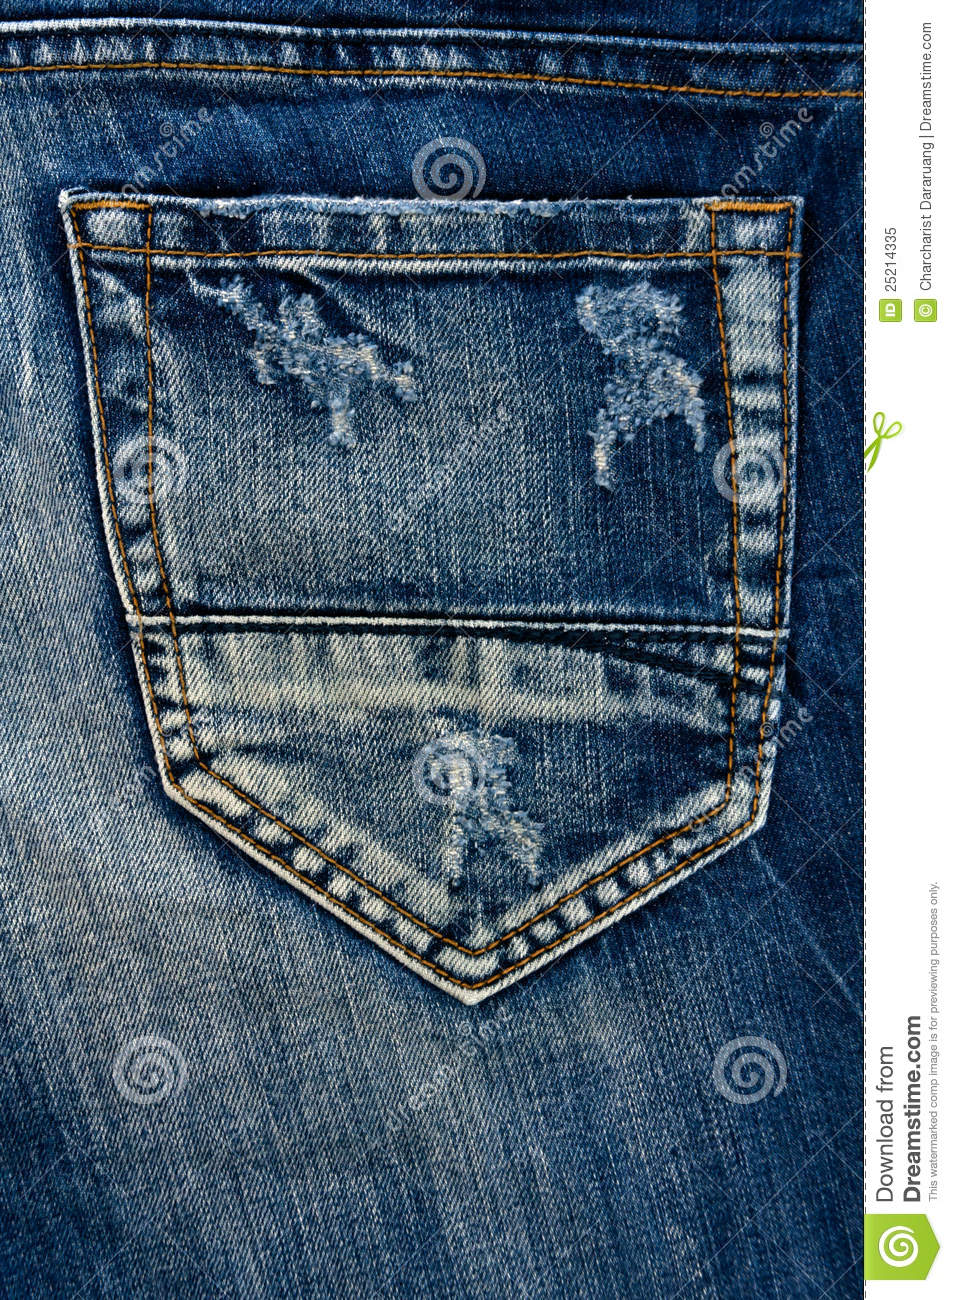 how to fix a jean pocket